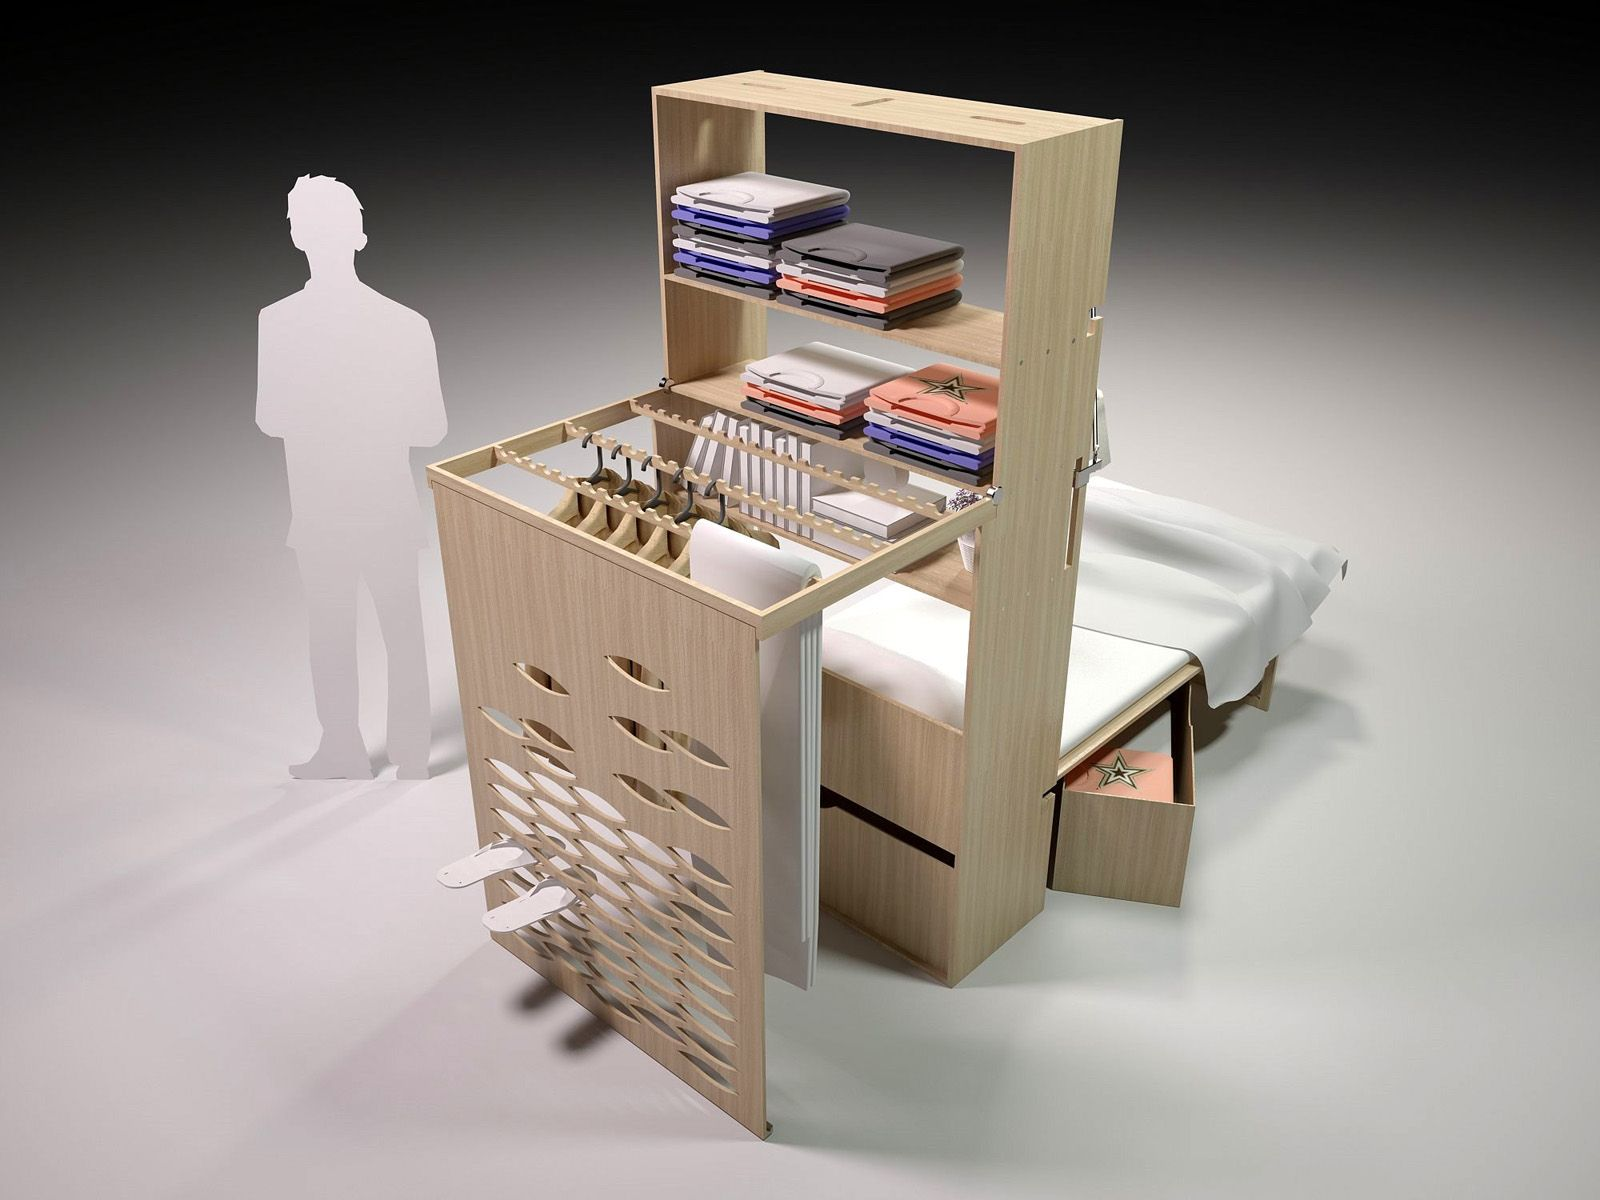 Danius Miegamasis 2 0 Transformable Furniture Is Built With